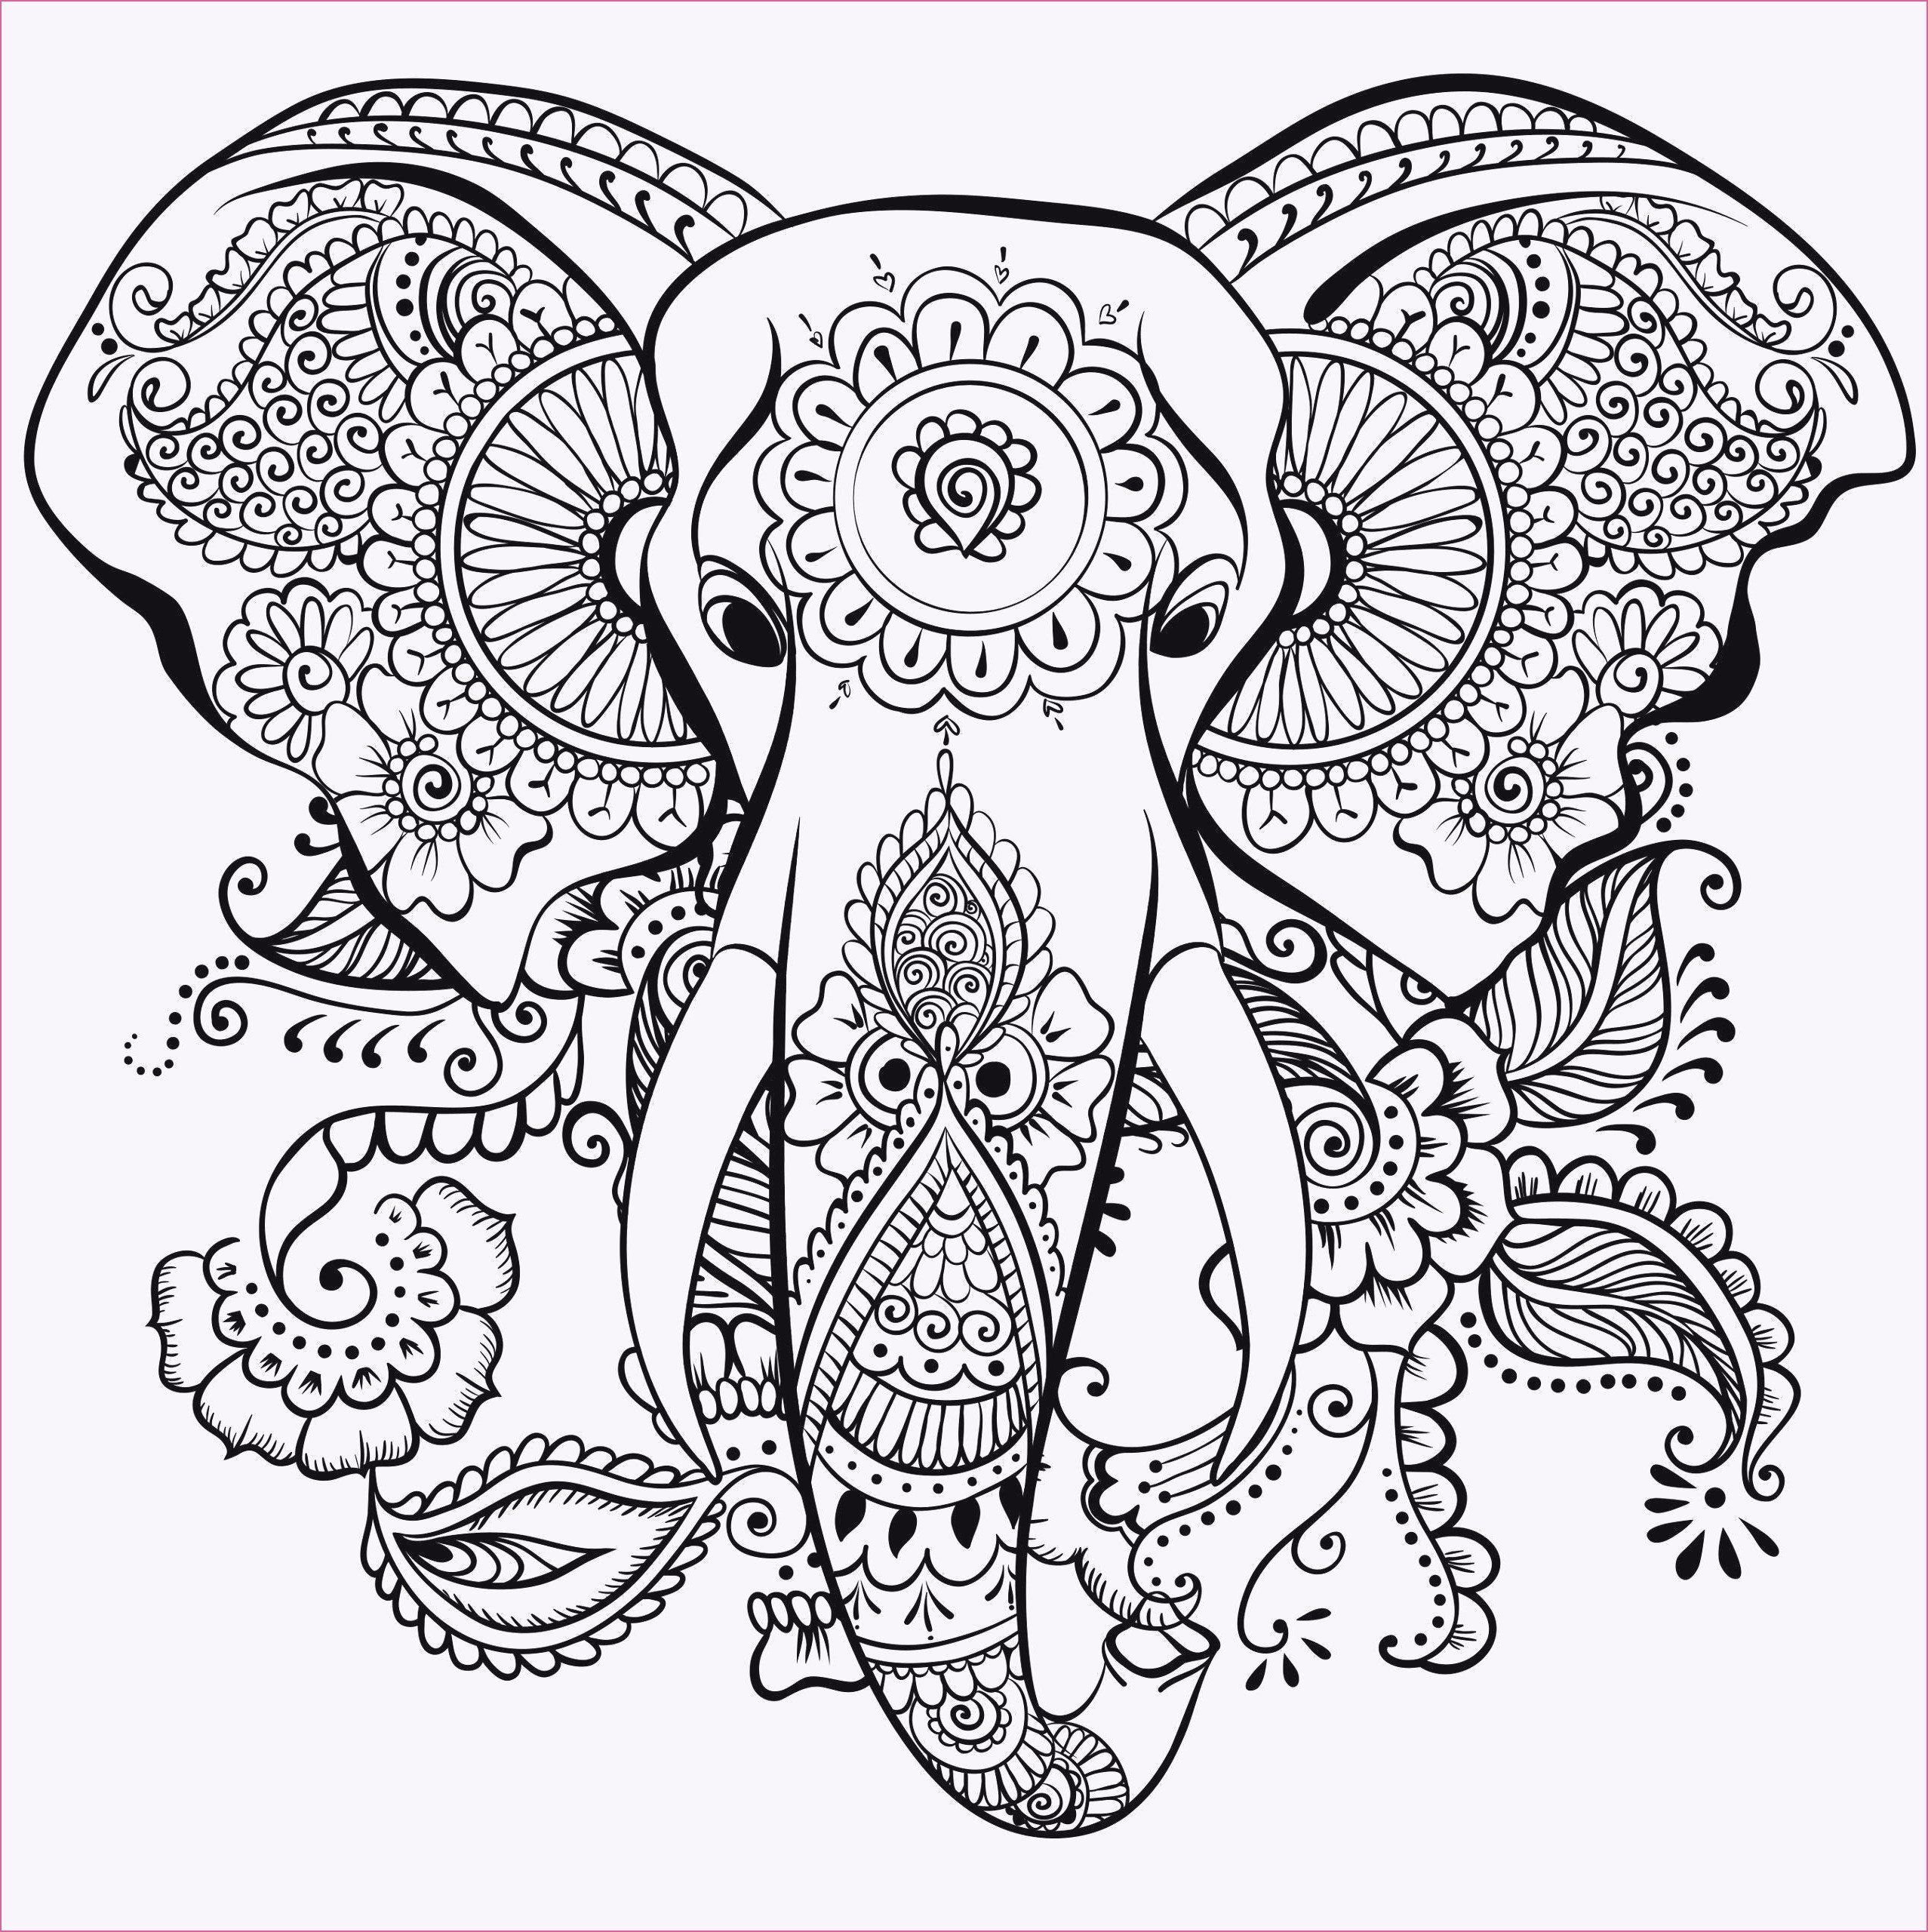 Coloring Apps For Computer Unique Kinder Ausmalbilder Am Puter In 2020 Elephant Coloring Page Mandala Coloring Pages Mandala Coloring